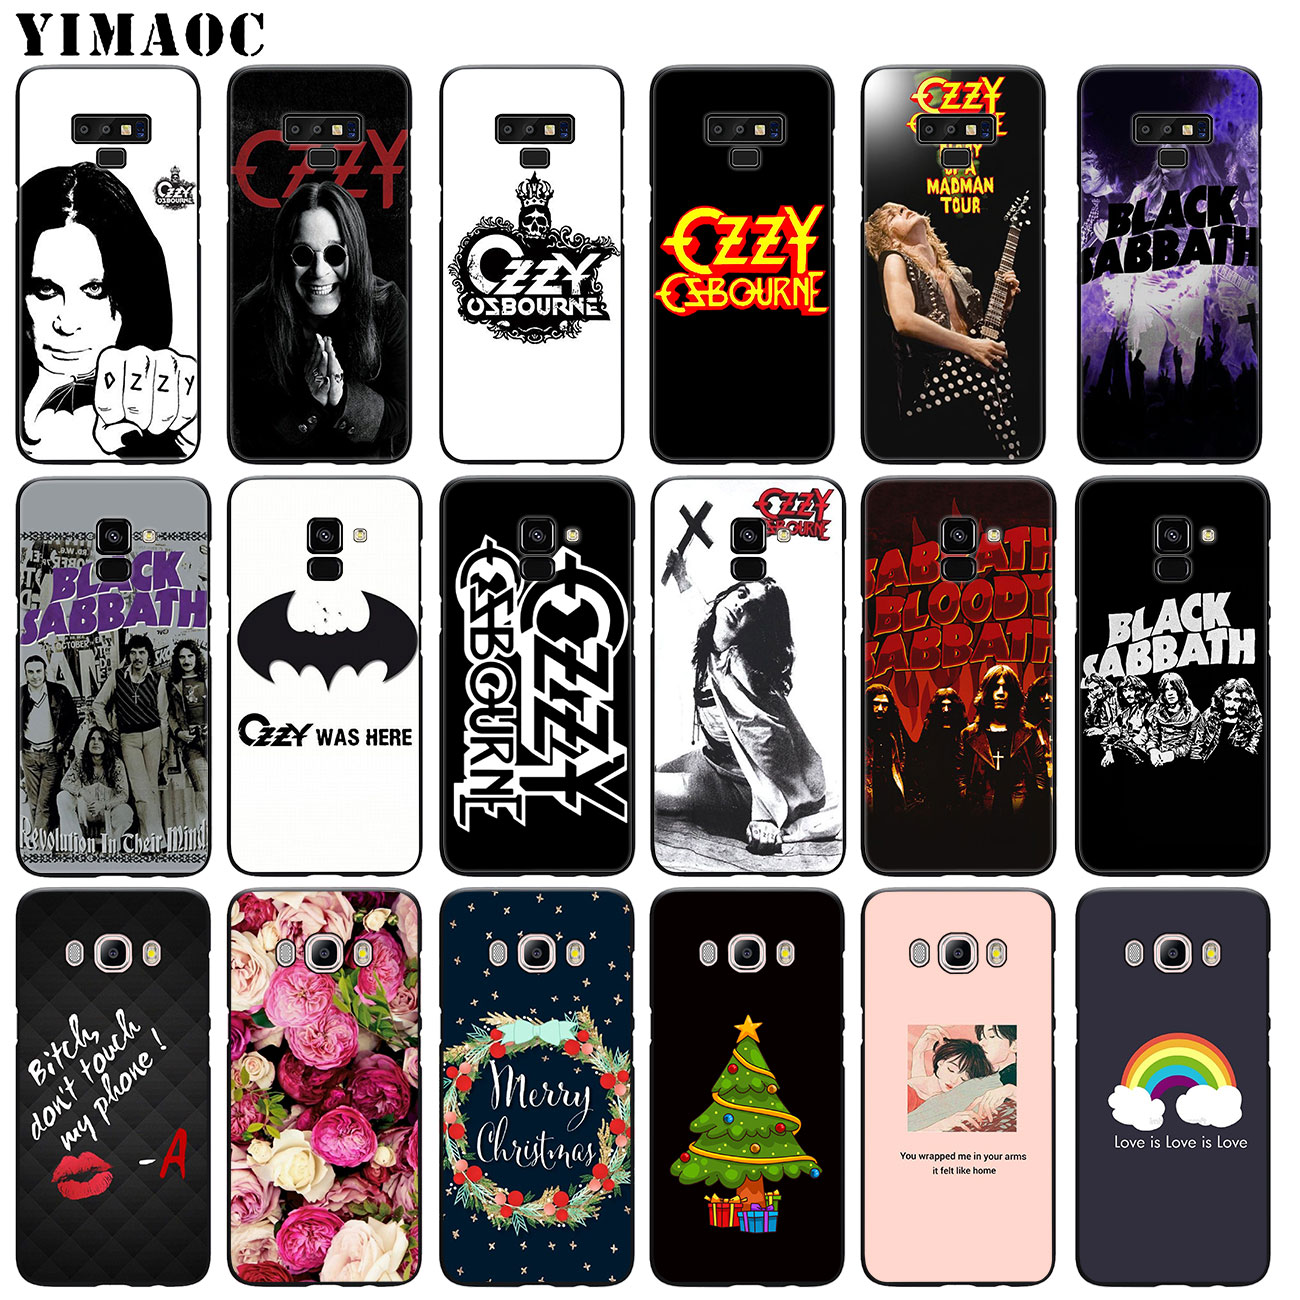 YIMAOC Ozzy Osbourne Soft Silicone <font><b>Phone</b></font> <font><b>Case</b></font> for <font><b>Samsung</b></font> Galaxy A6 A9 A8 A7 2018 A3 <font><b>A5</b></font> <font><b>2016</b></font> 2017 Note 9 8 10 Plus Lite image